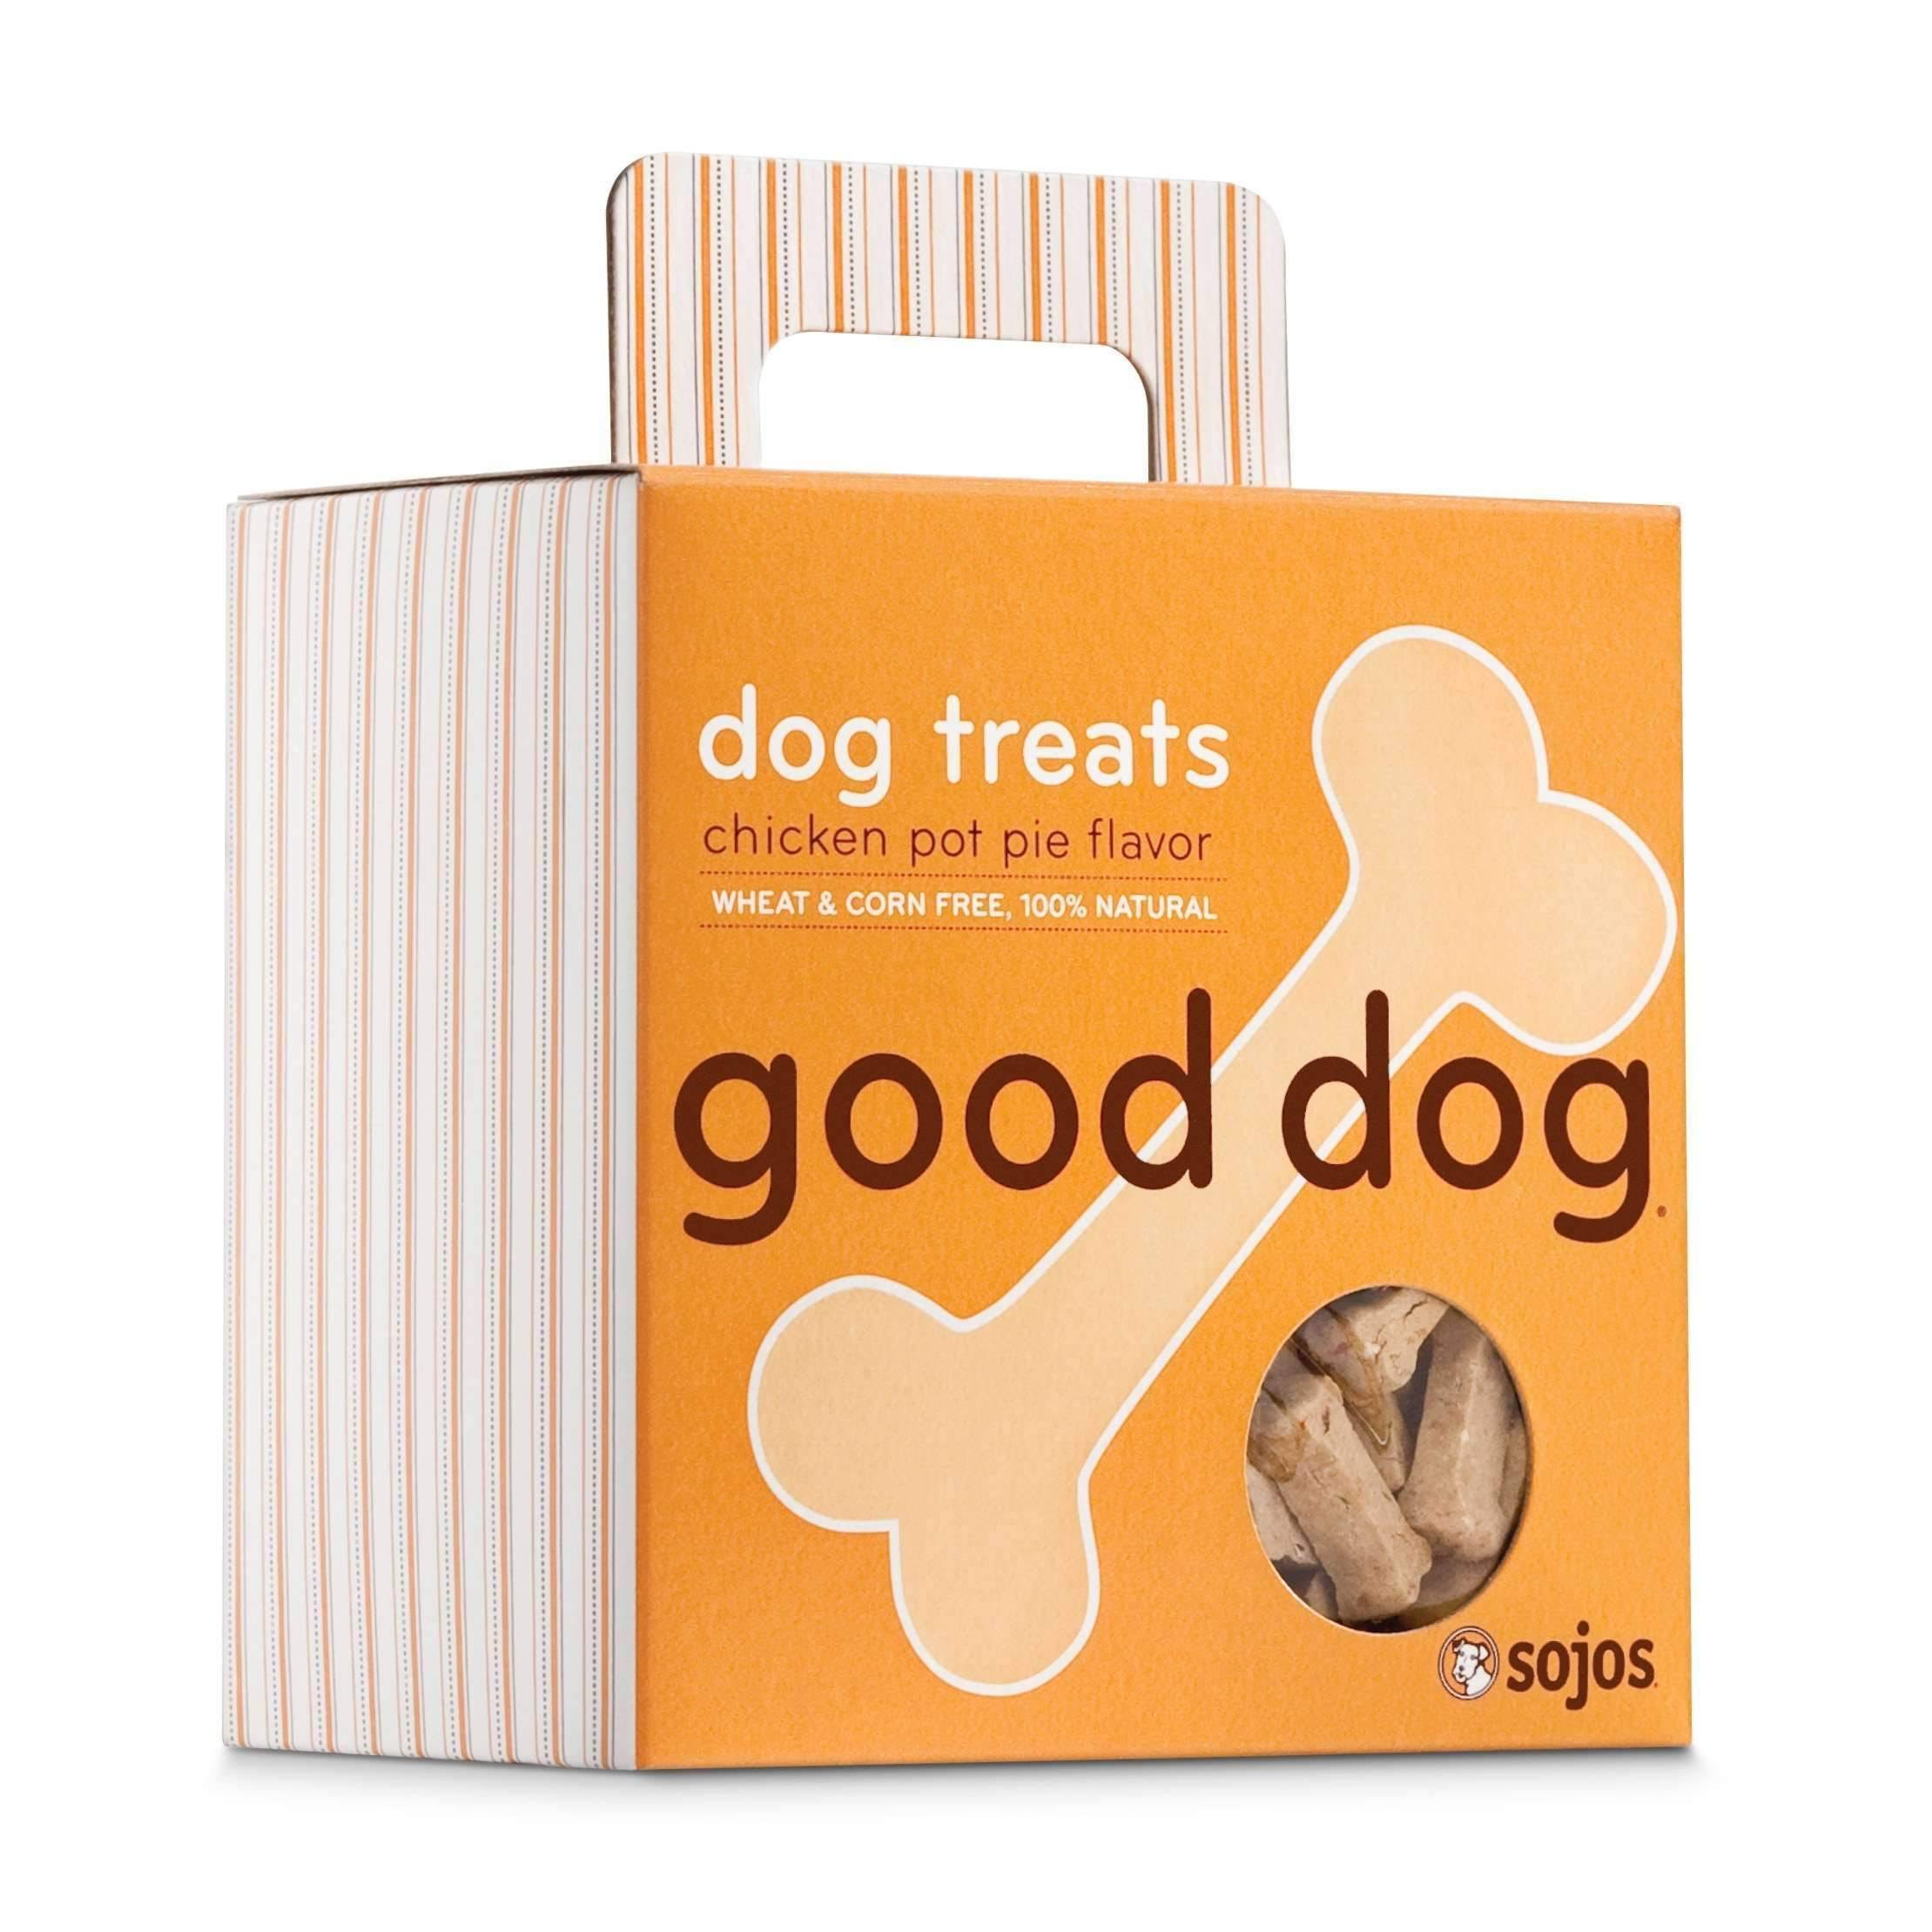 Sojos Good Dog Treats - Chicken Pot Pie